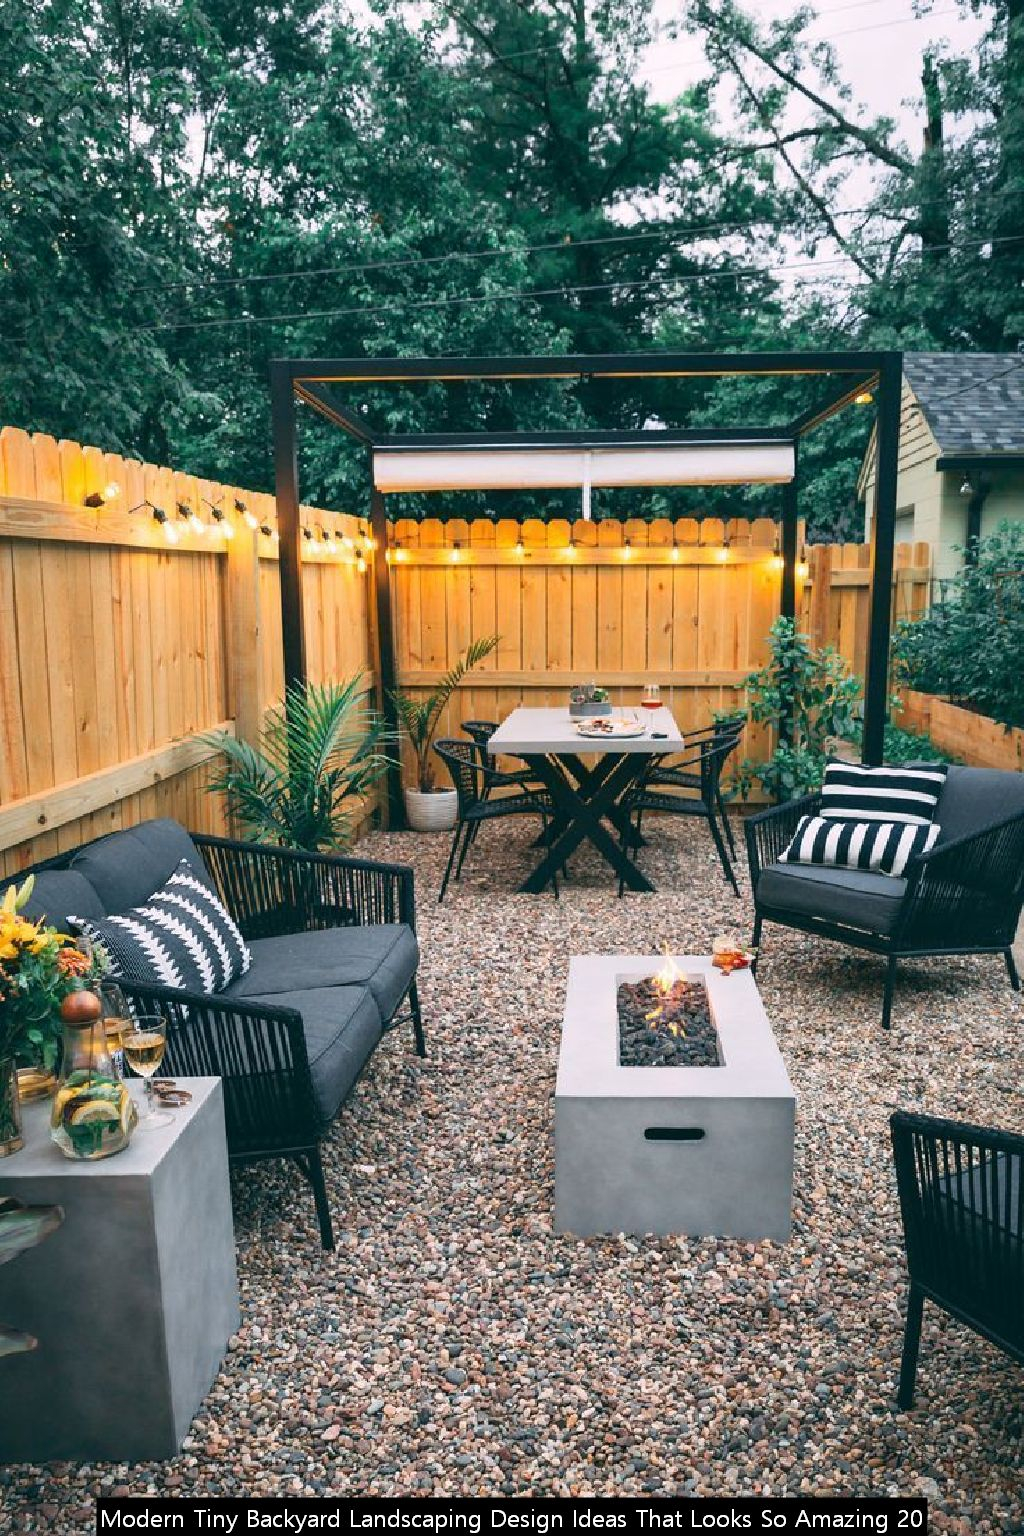 Modern Tiny Backyard Landscaping Design Ideas That Looks So Amazing 20